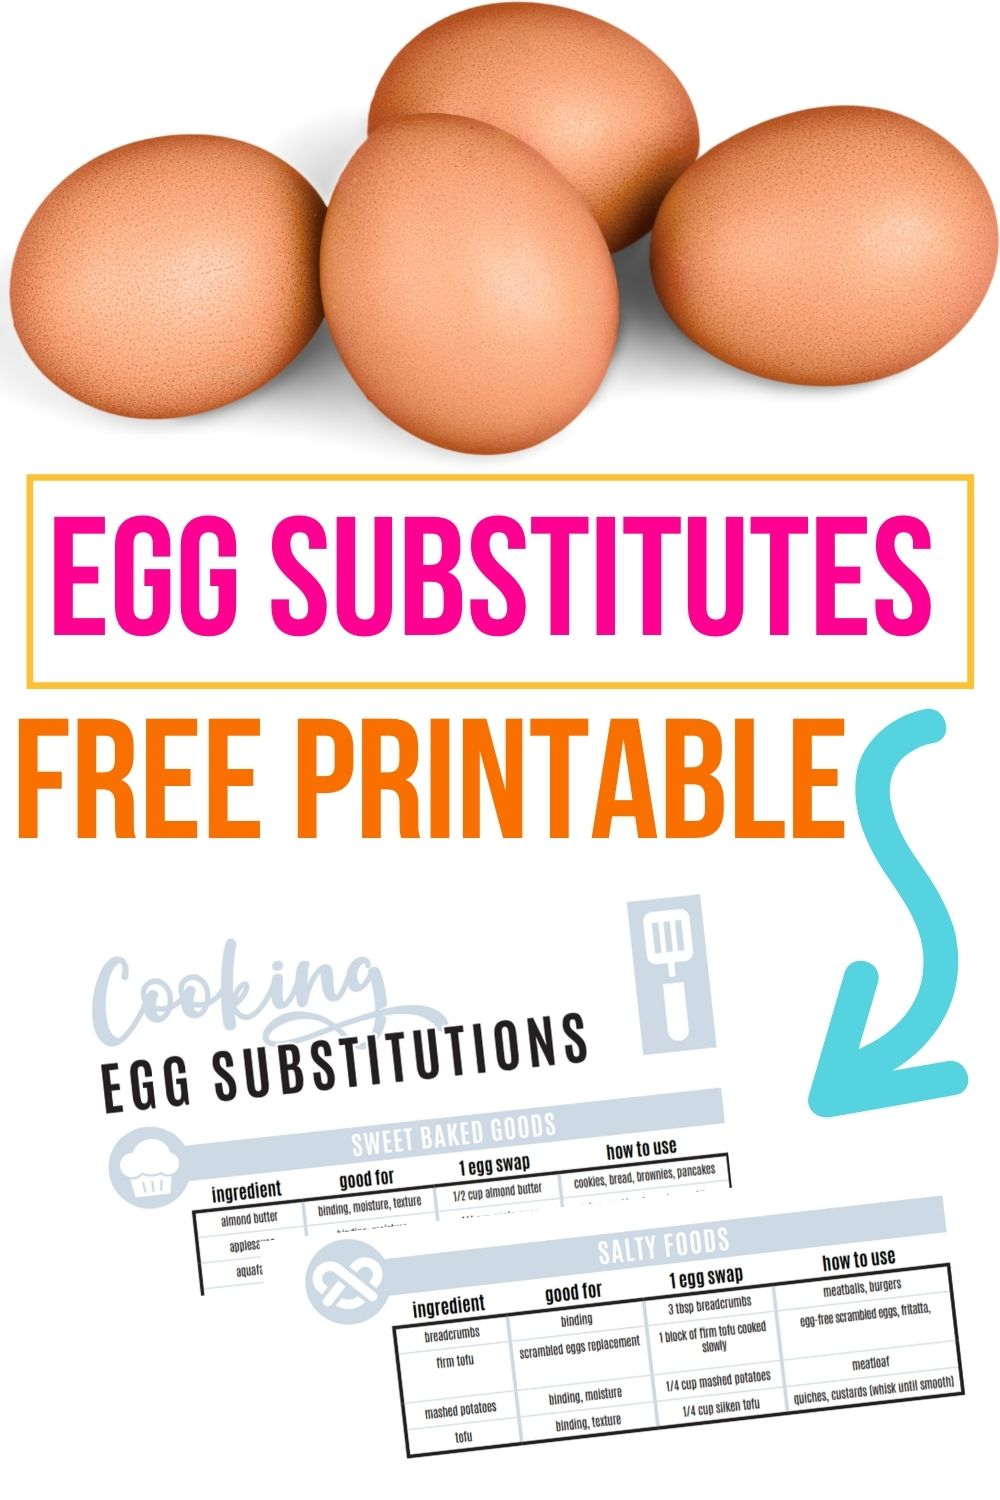 egg substitutes printable.